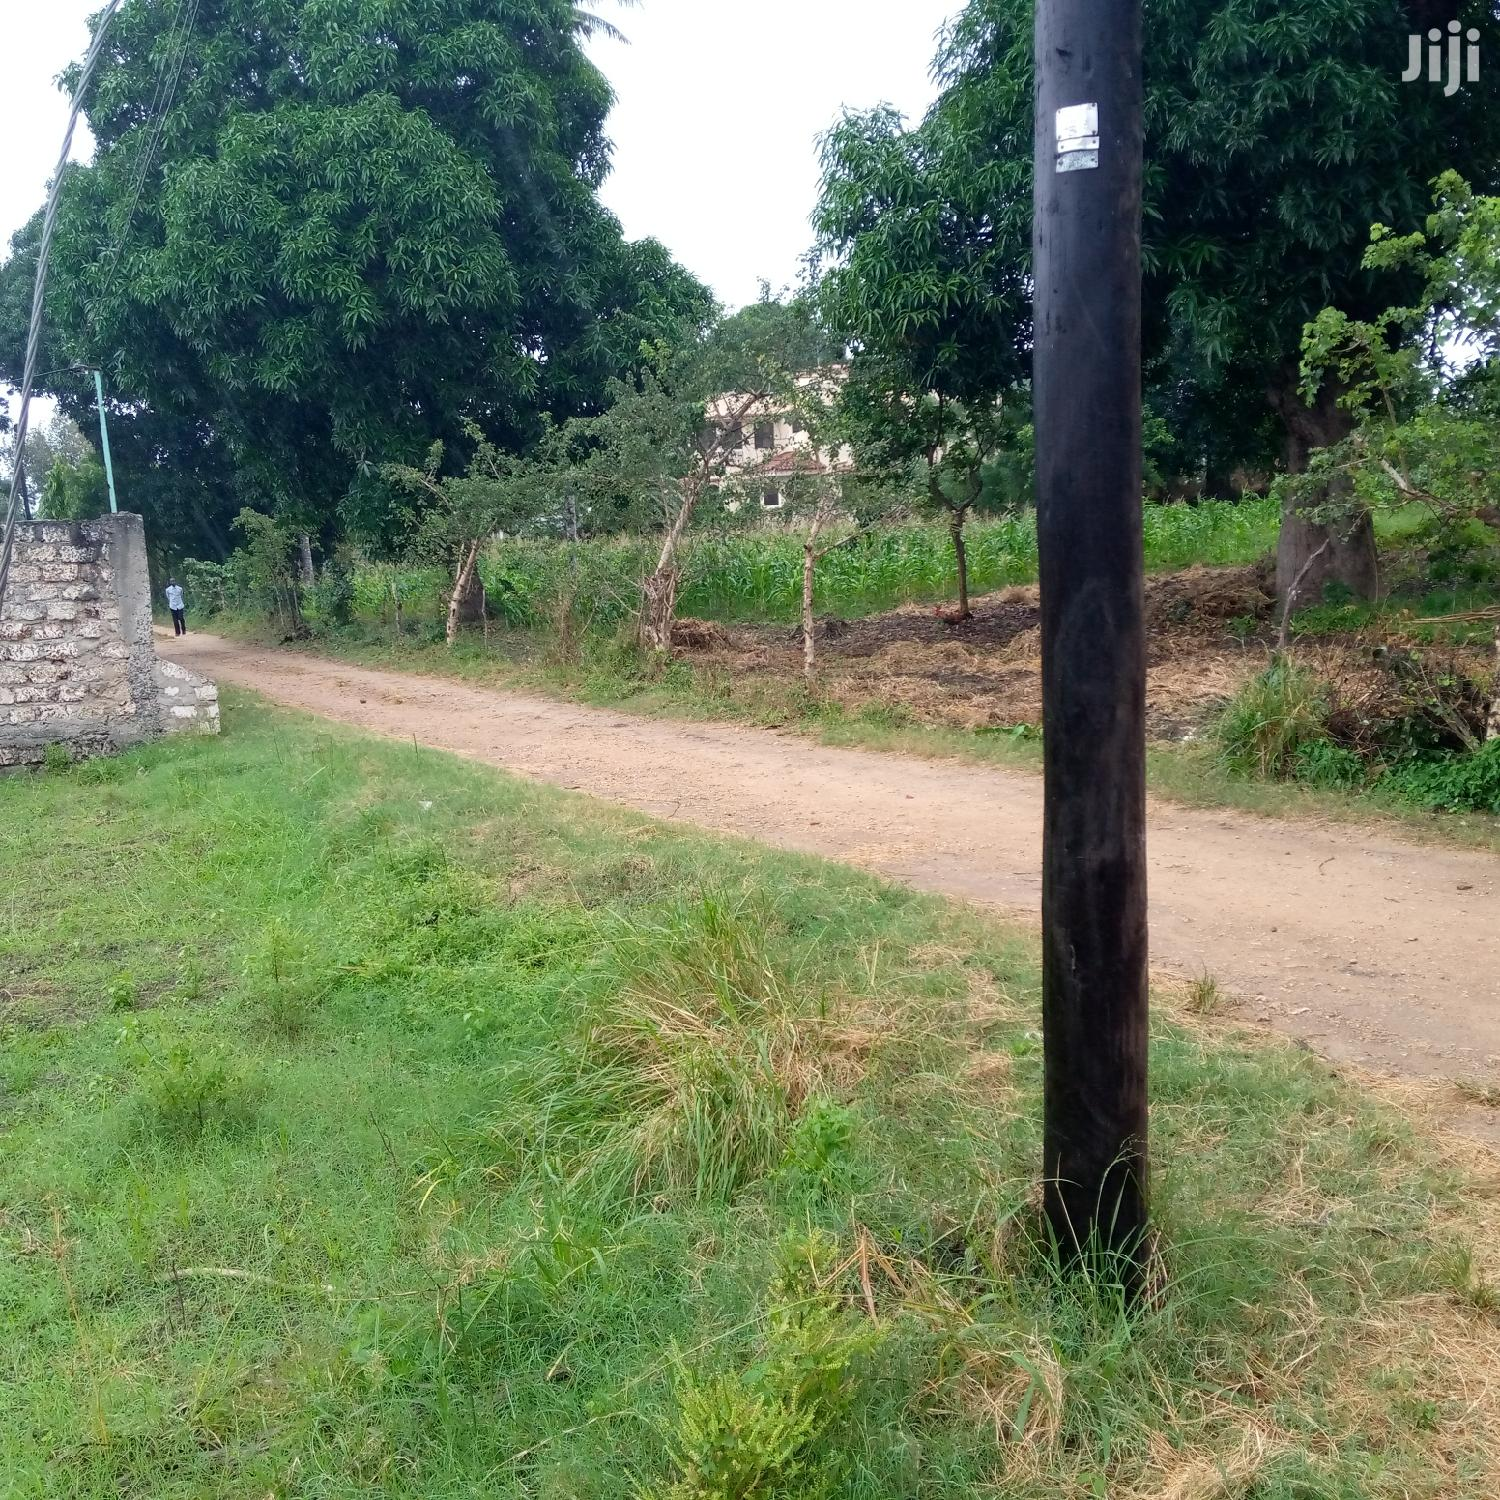 Archive: Plots for Sale at Utange With Titles Ranging From 600k-1.2m